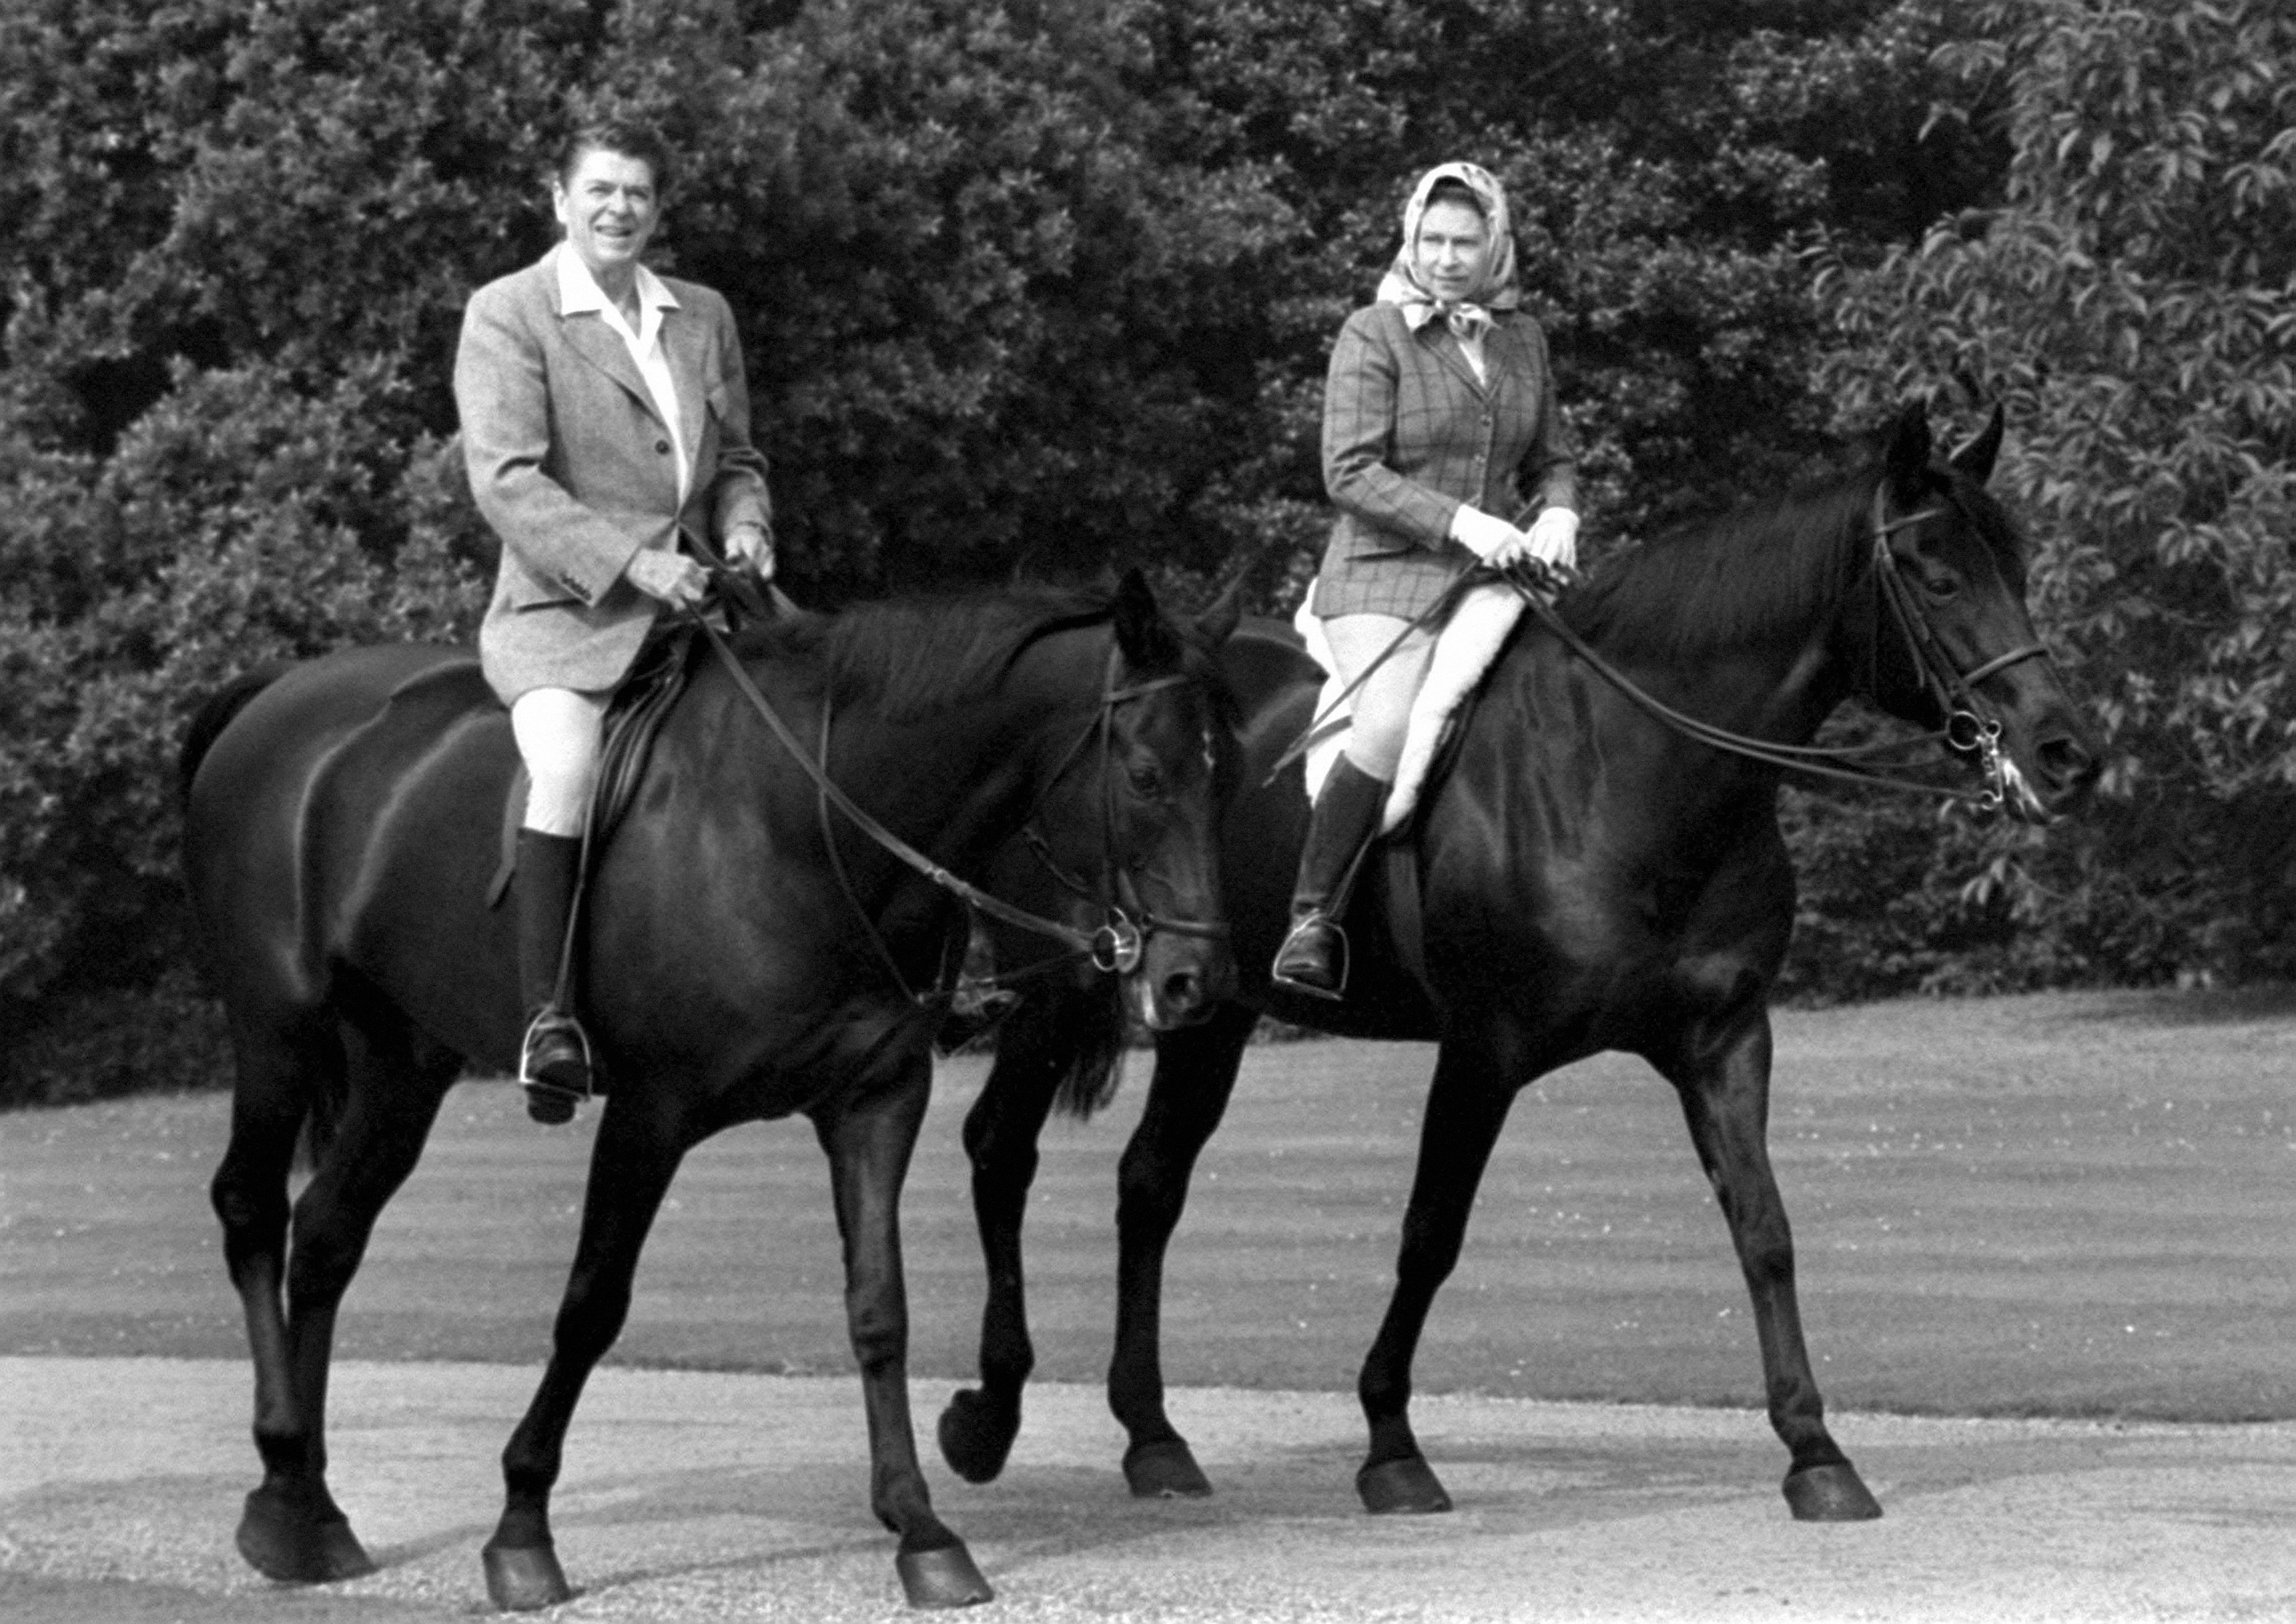 The Queen and Ronald Reagan